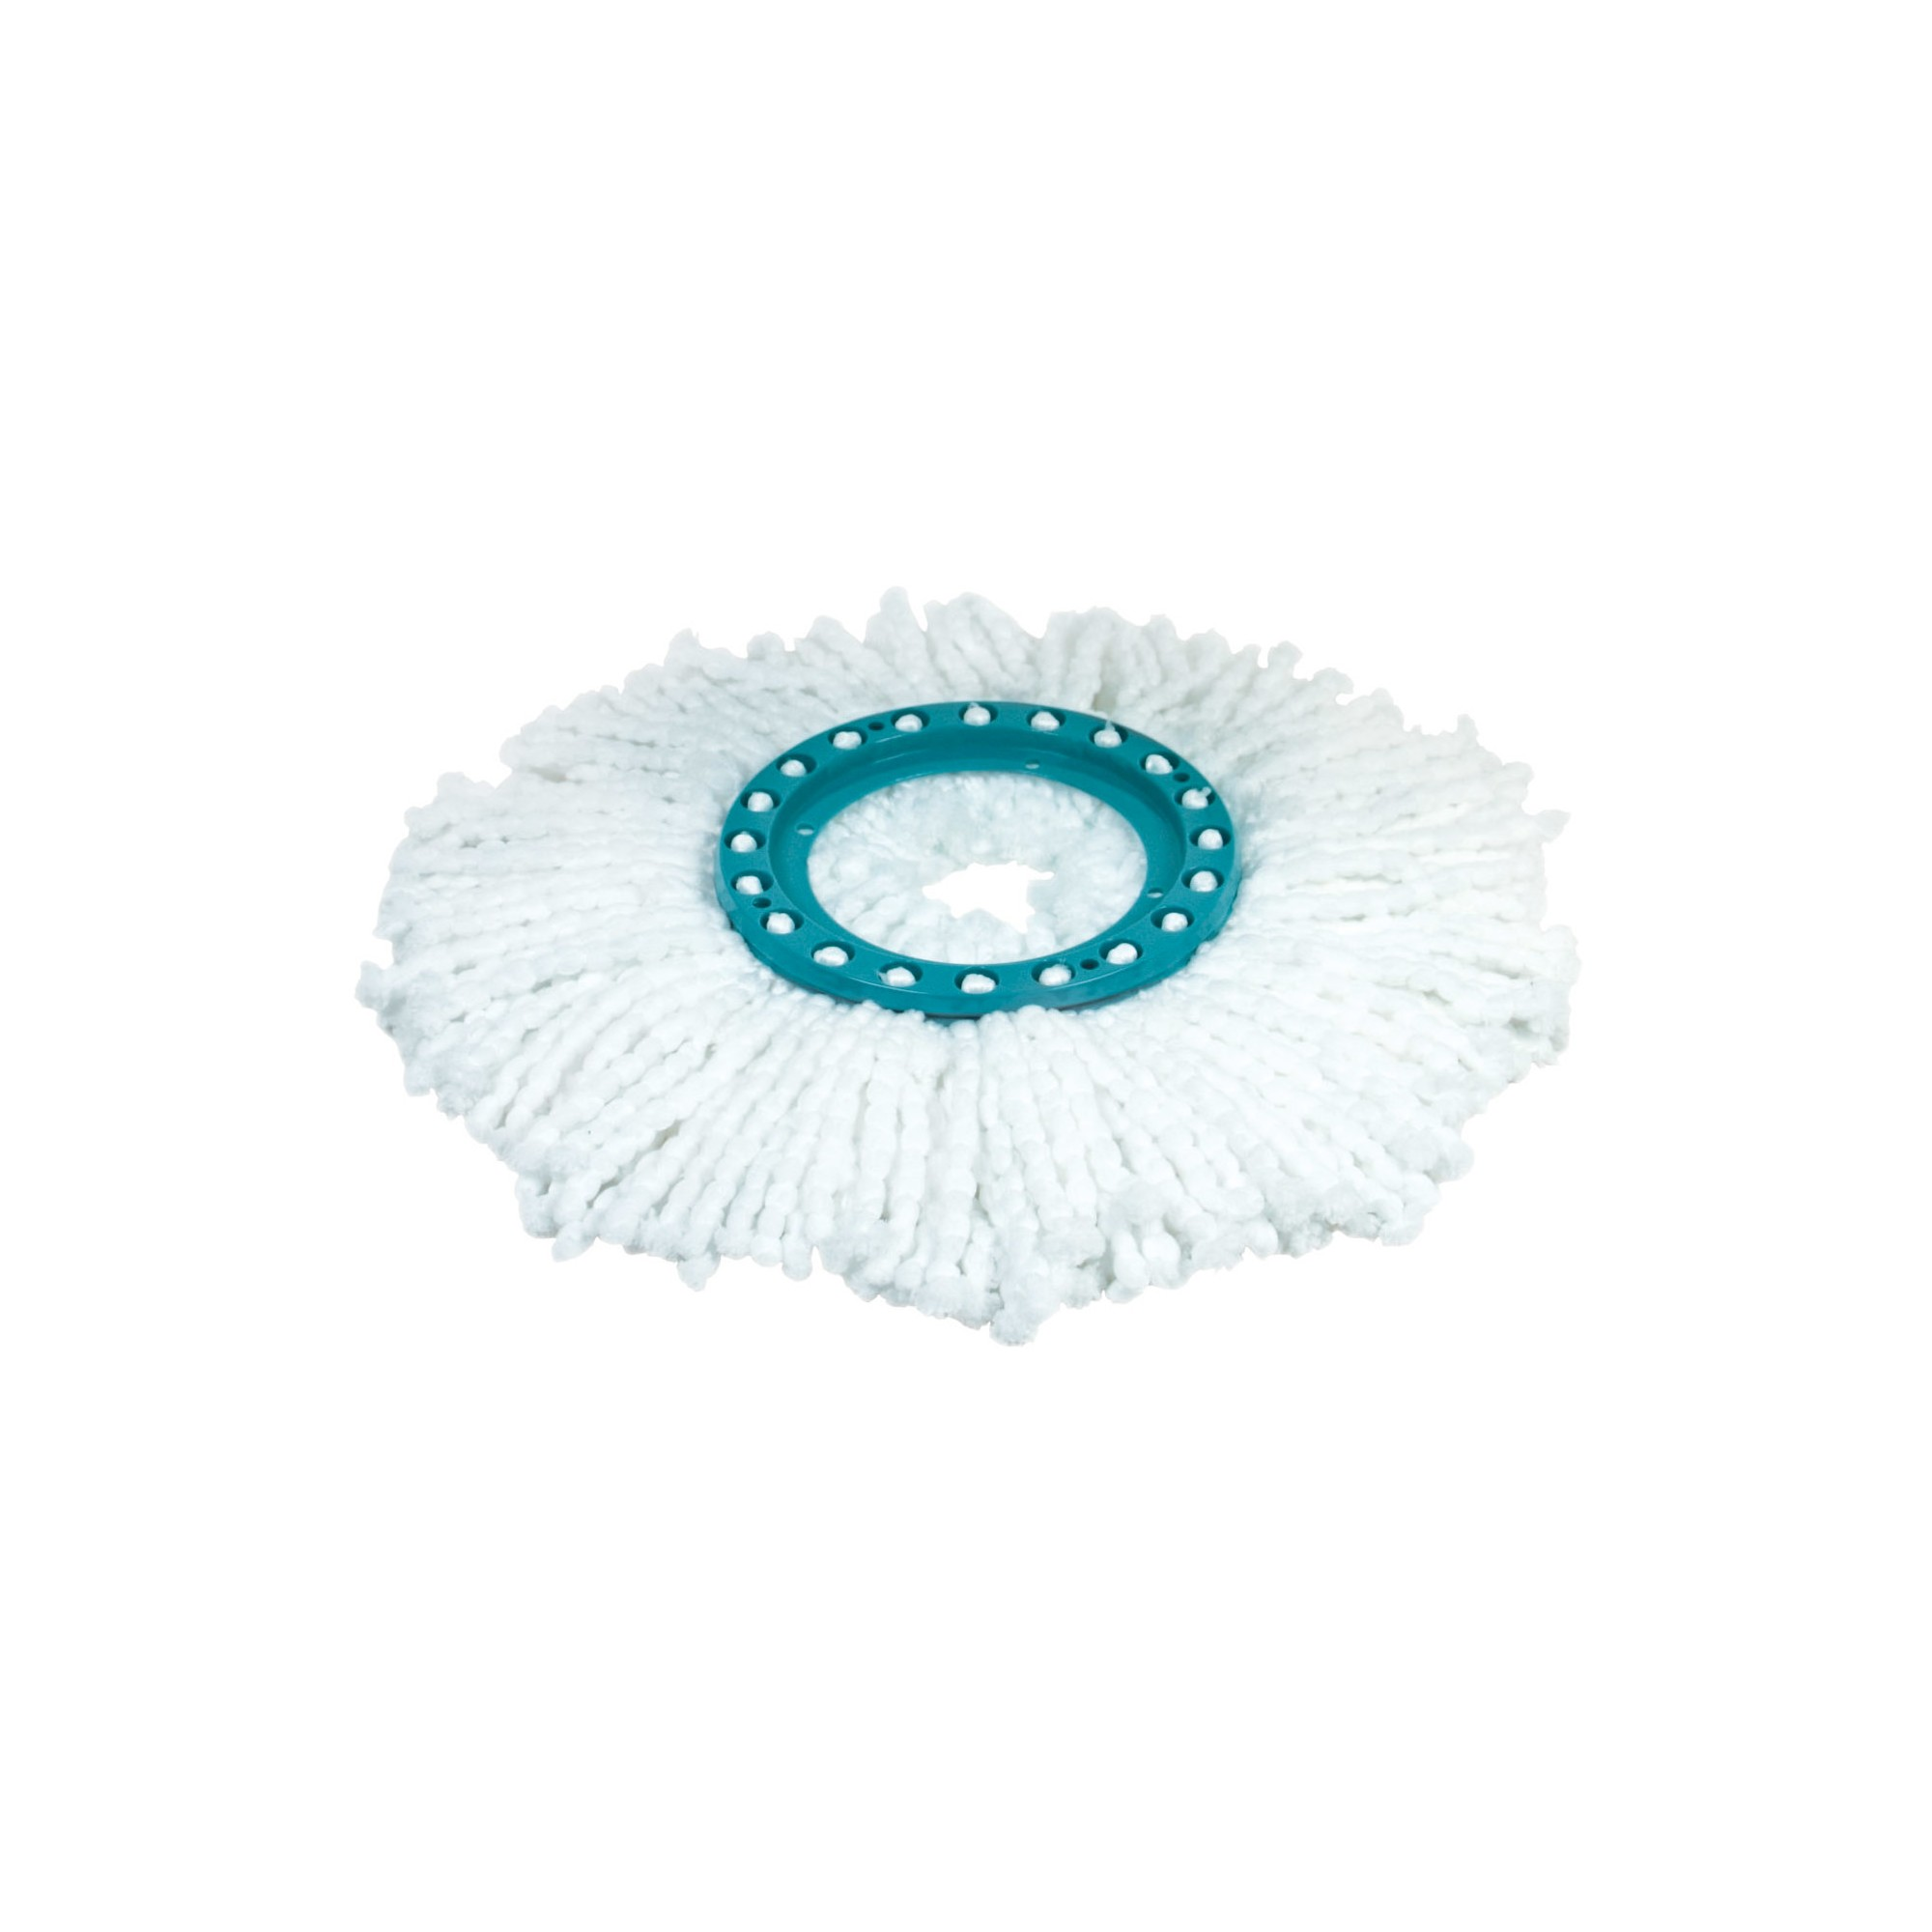 Leifheit Clean Twist Replacement Mop Head White Mop Heads Household Cleaning Supplies Cleaning